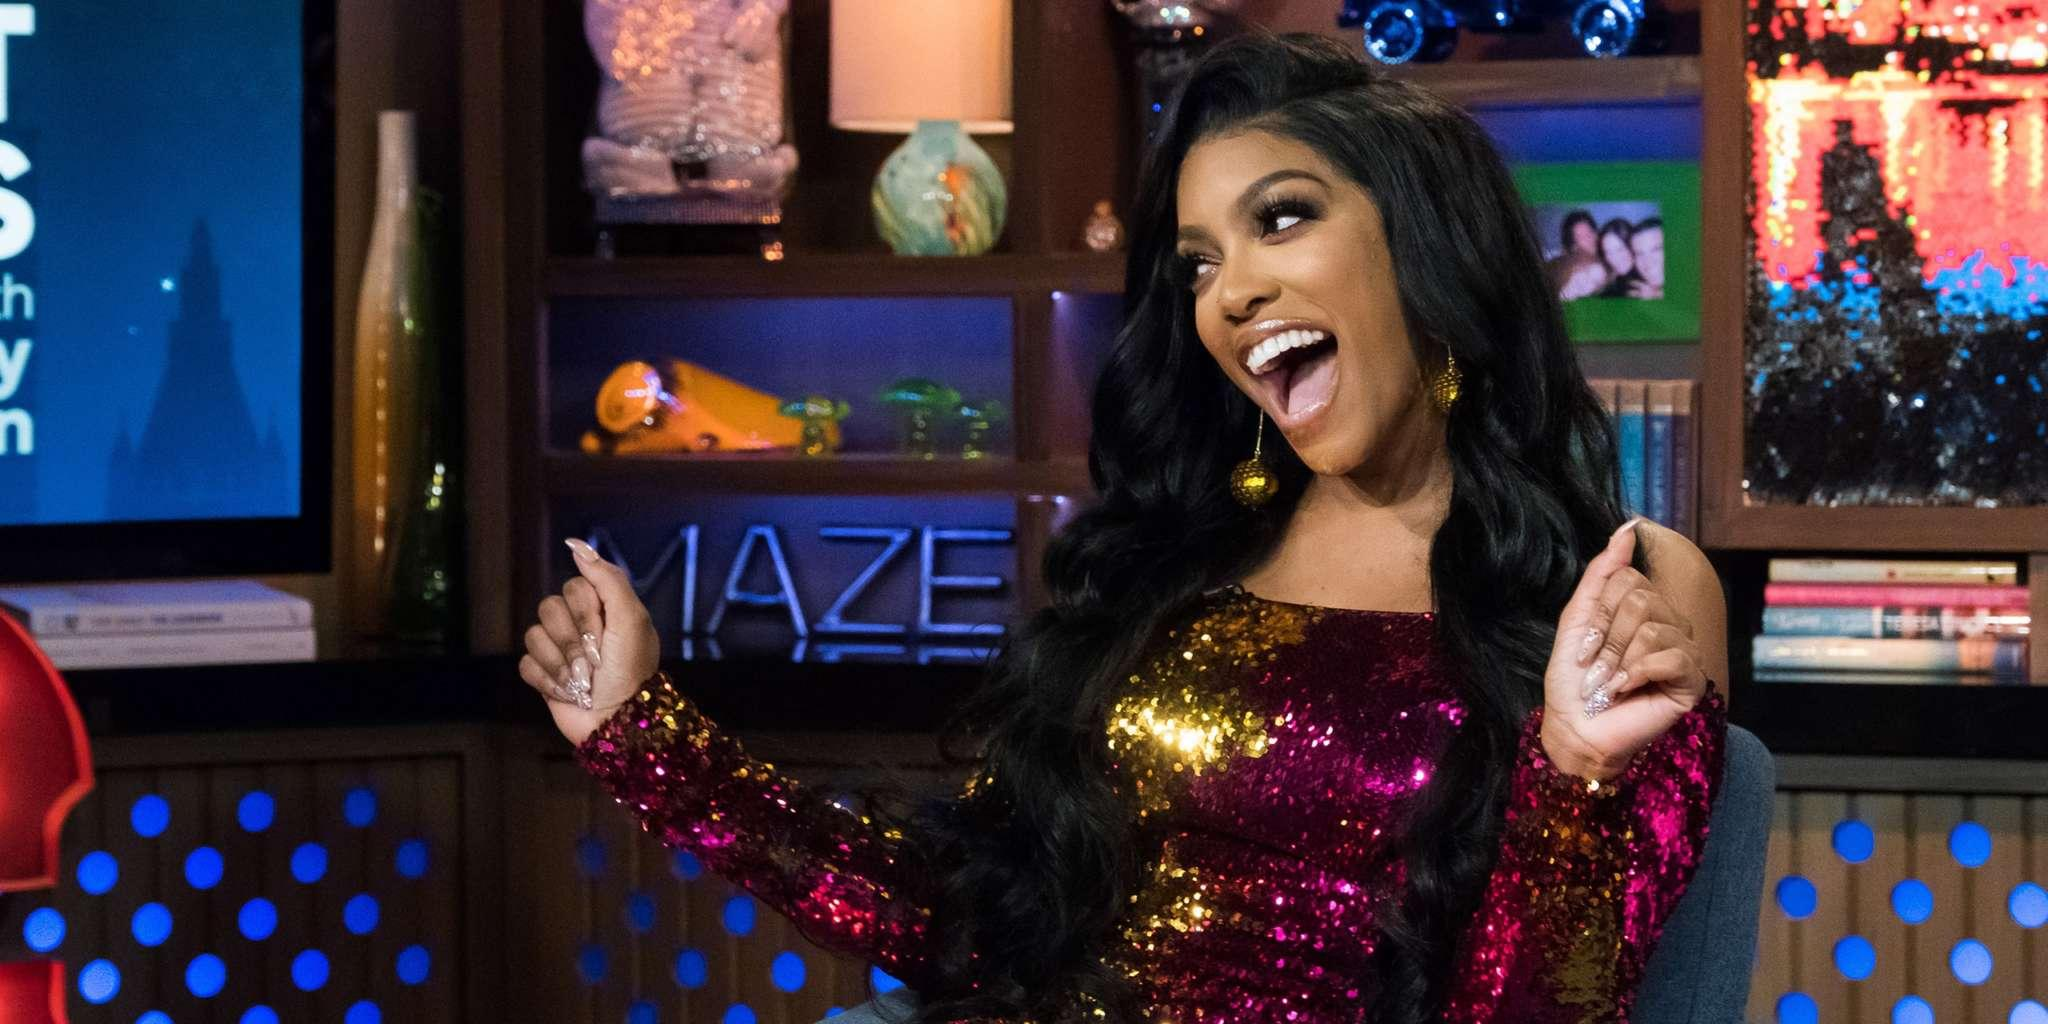 Porsha Williams' First Podcast Episode Addresses 'Situationships, Relationships, And Entanglements' - Check It Out Here